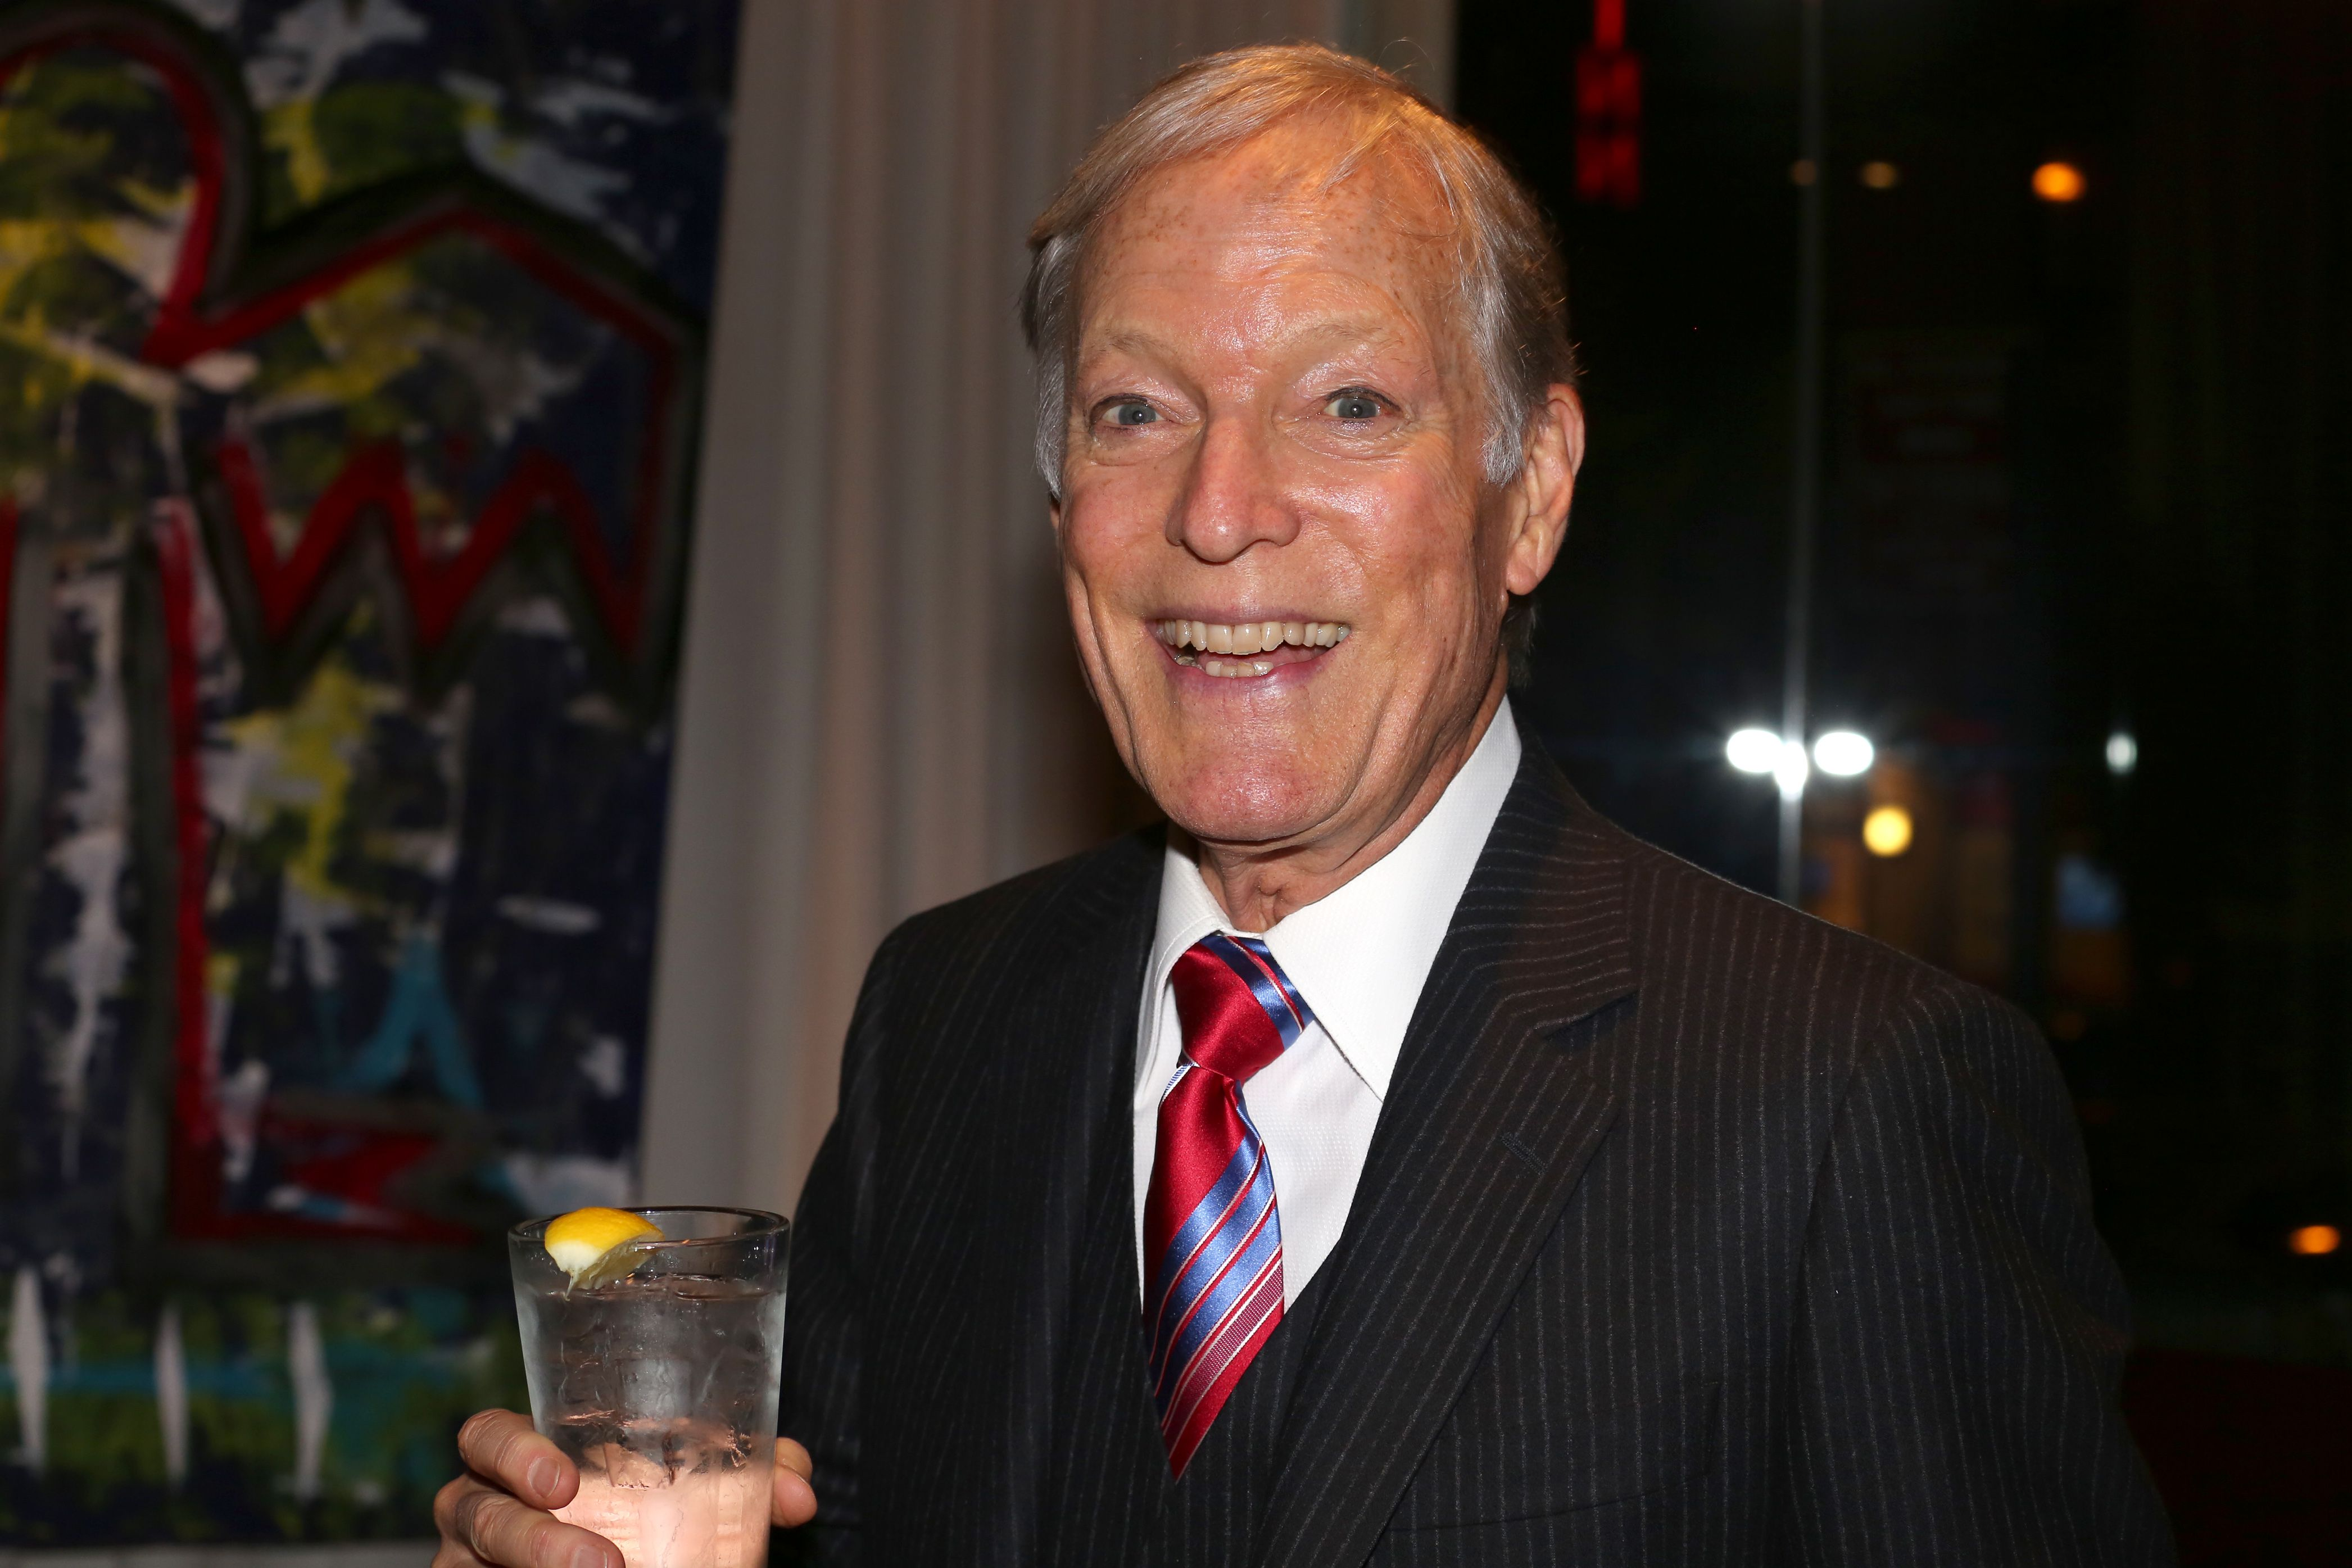 Richard Chamberlain attends the Off-Broadway Opening Night after party for the New Group production of Sticks and Bones' at Ktchn in The Out NYC on November 6, 2014 in New York City. | Source: Getty Images